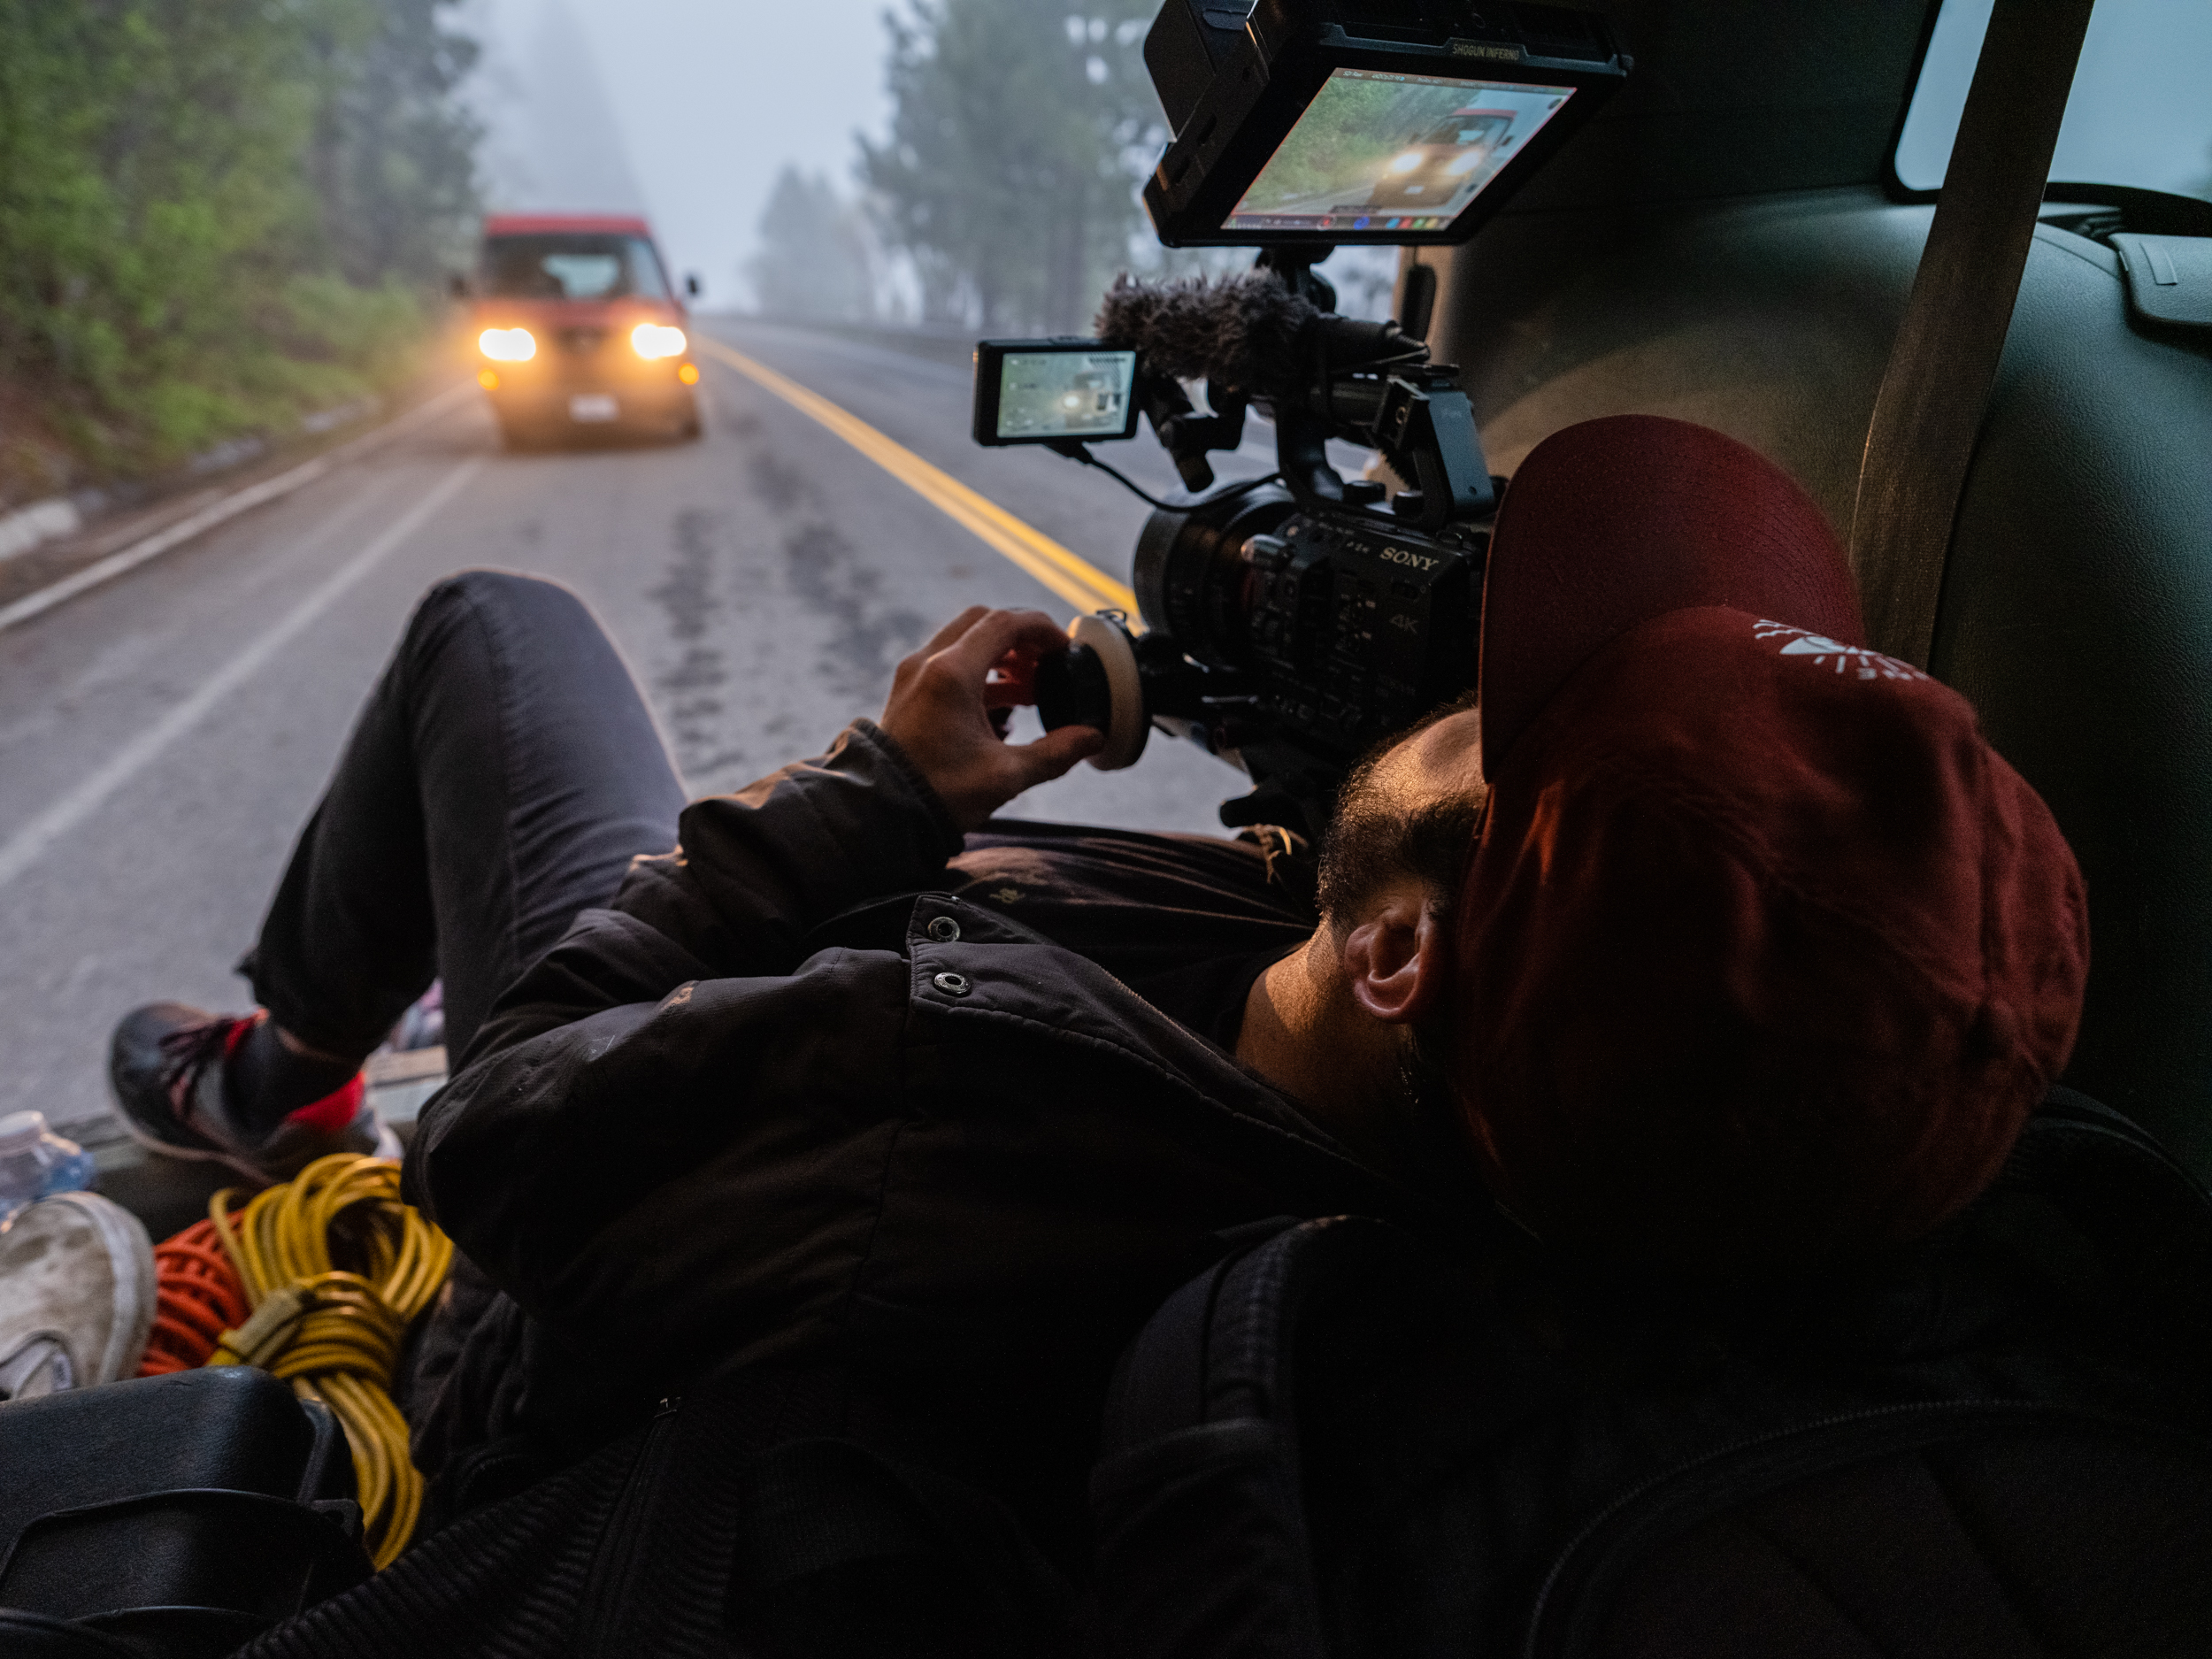 Westfalia_Donner lake_Van driving_BTS_Paul Filming 2.jpg